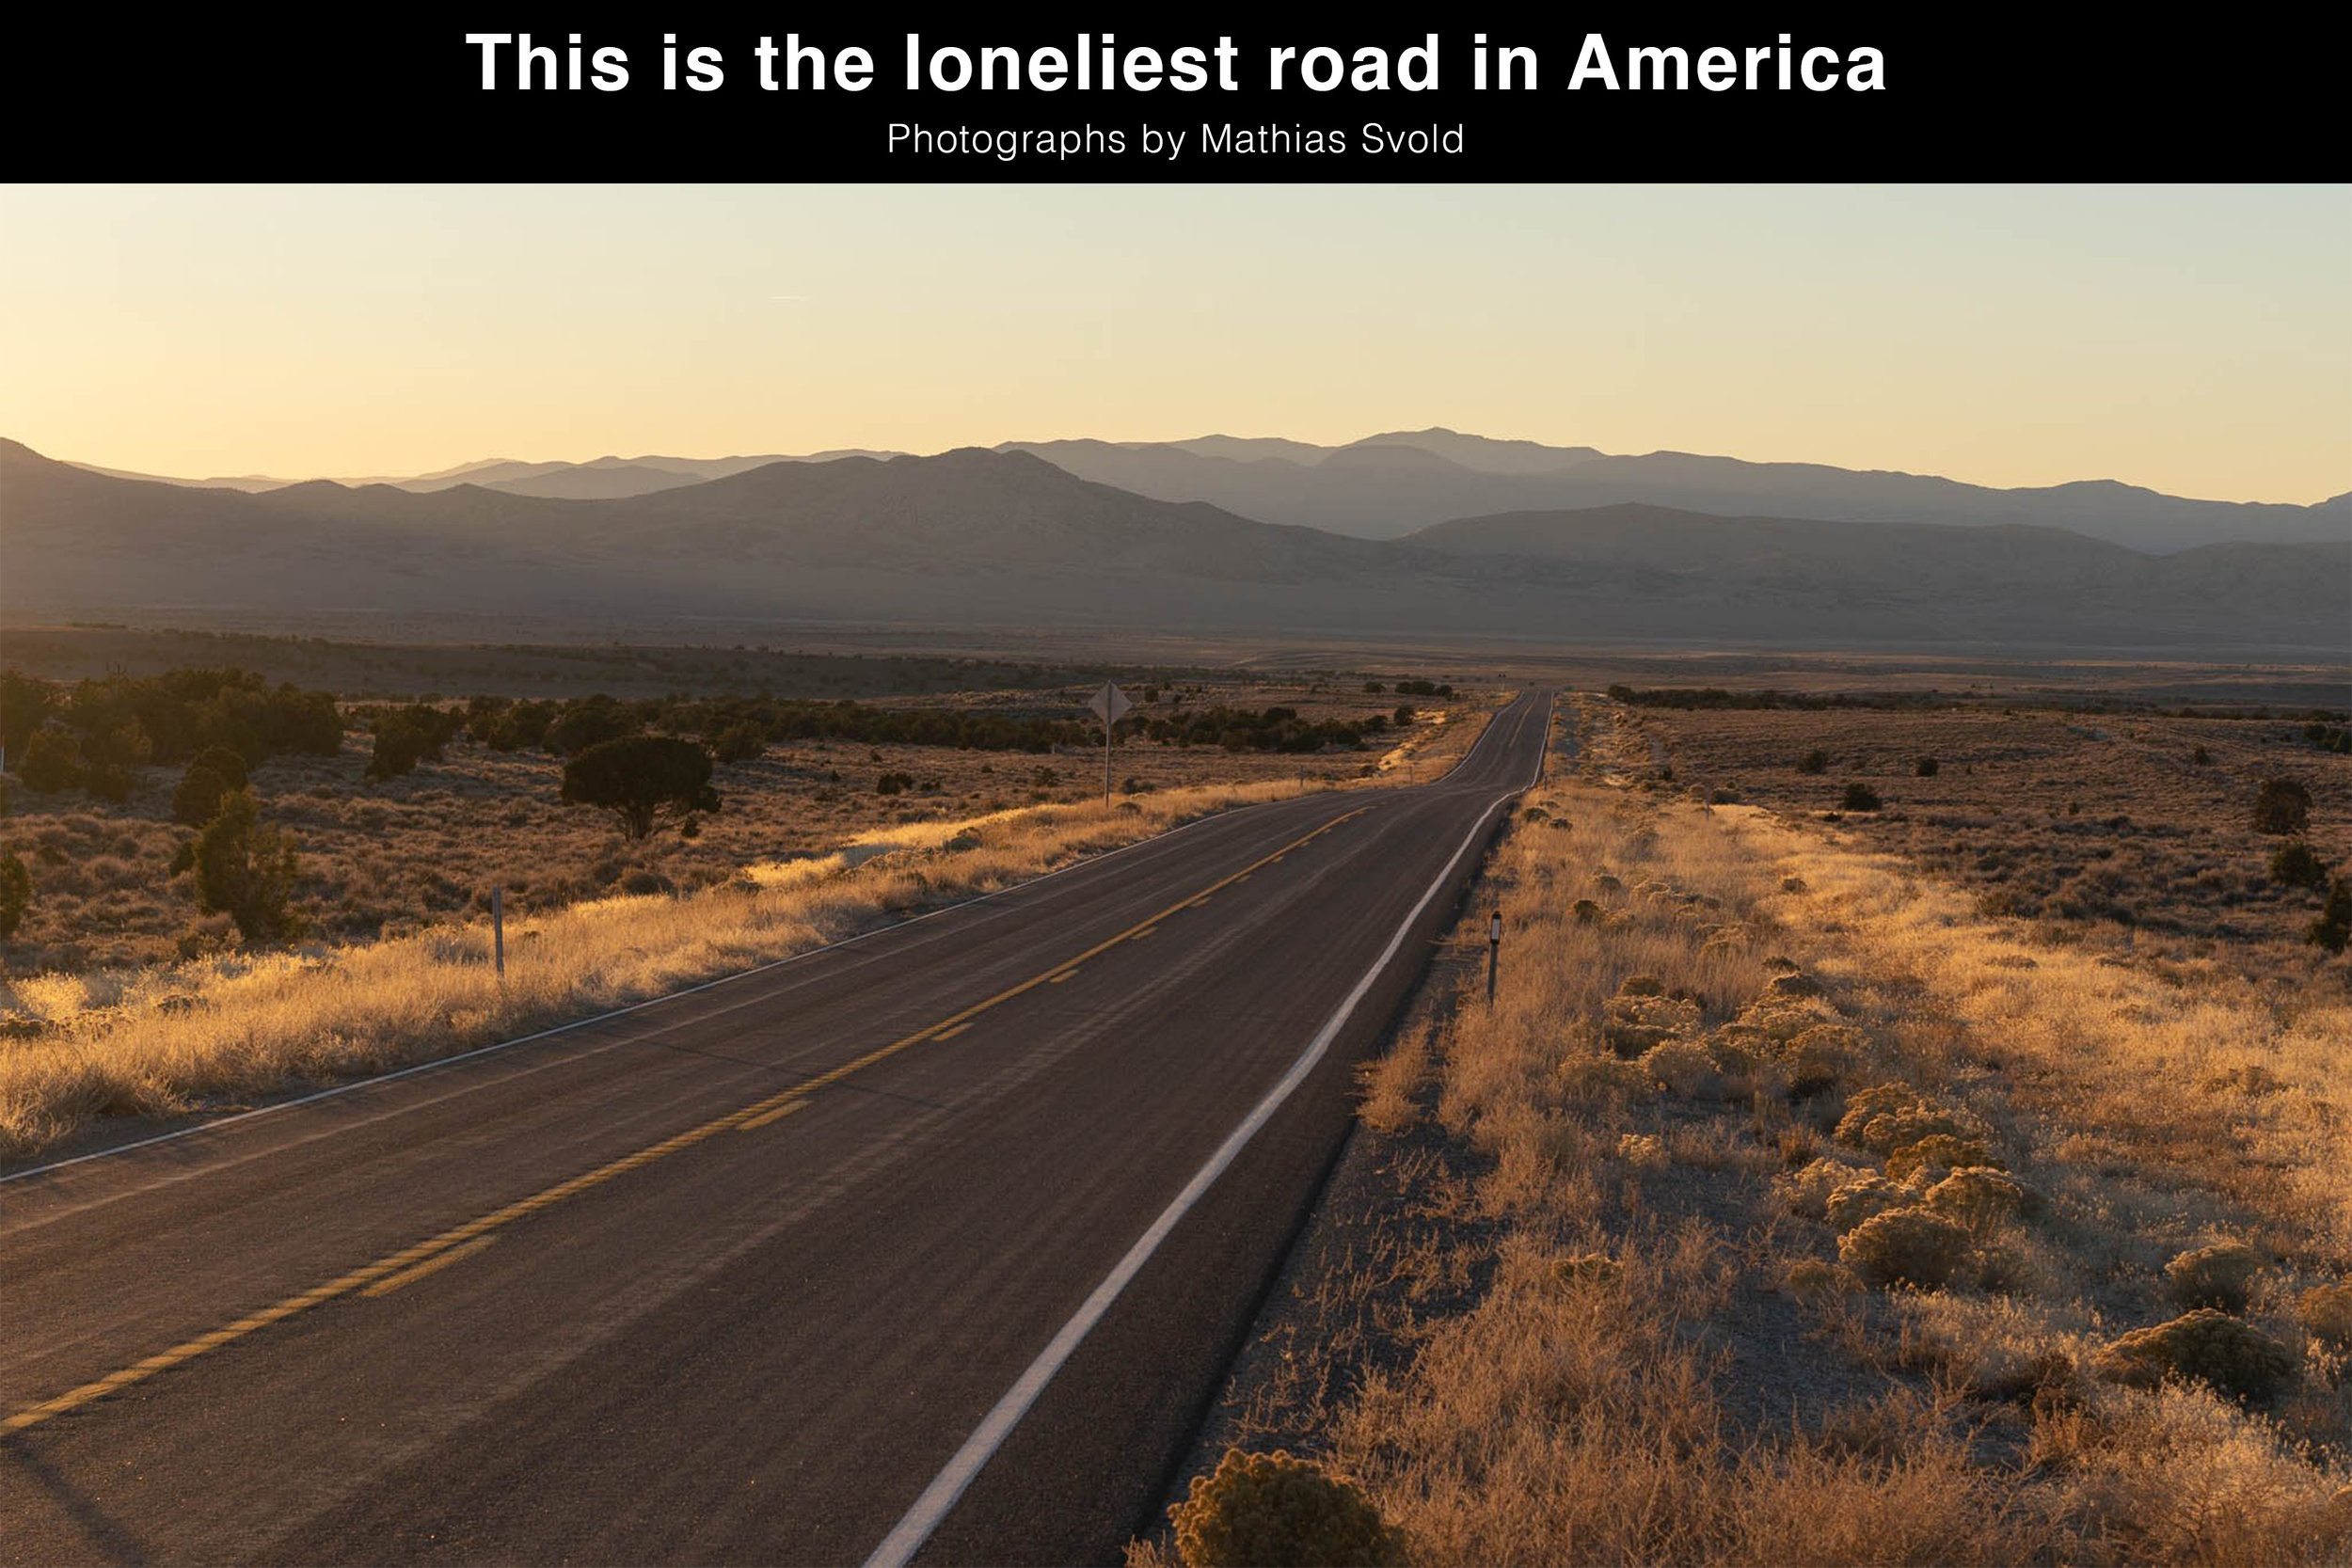 roadtrip-loneliest-road-america-JH.jpg